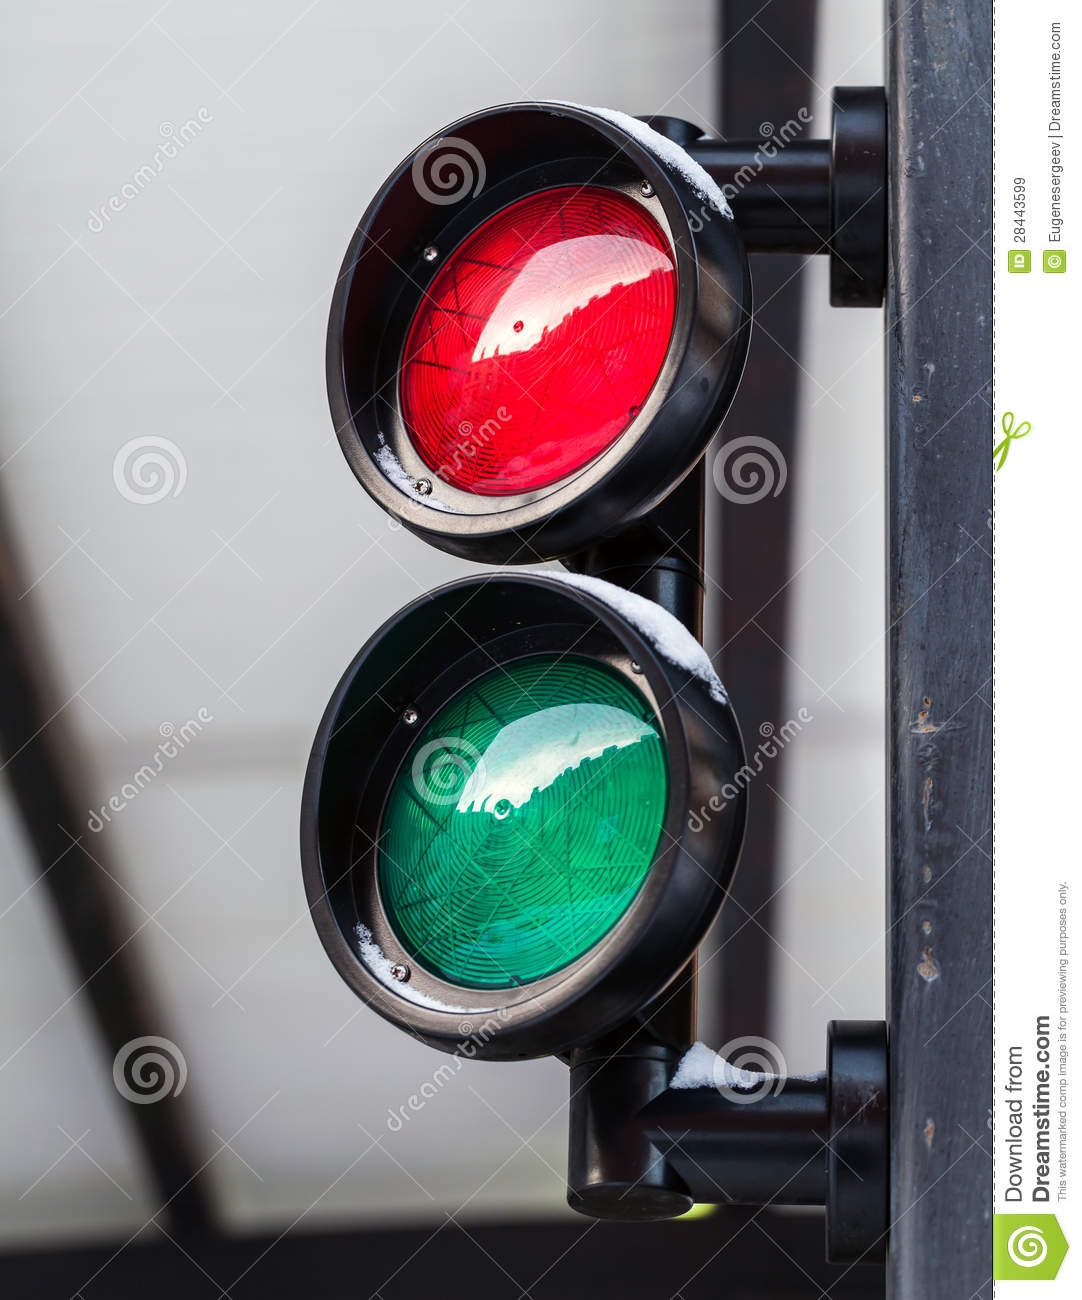 Red And Green Small Traffic Light Stock Image